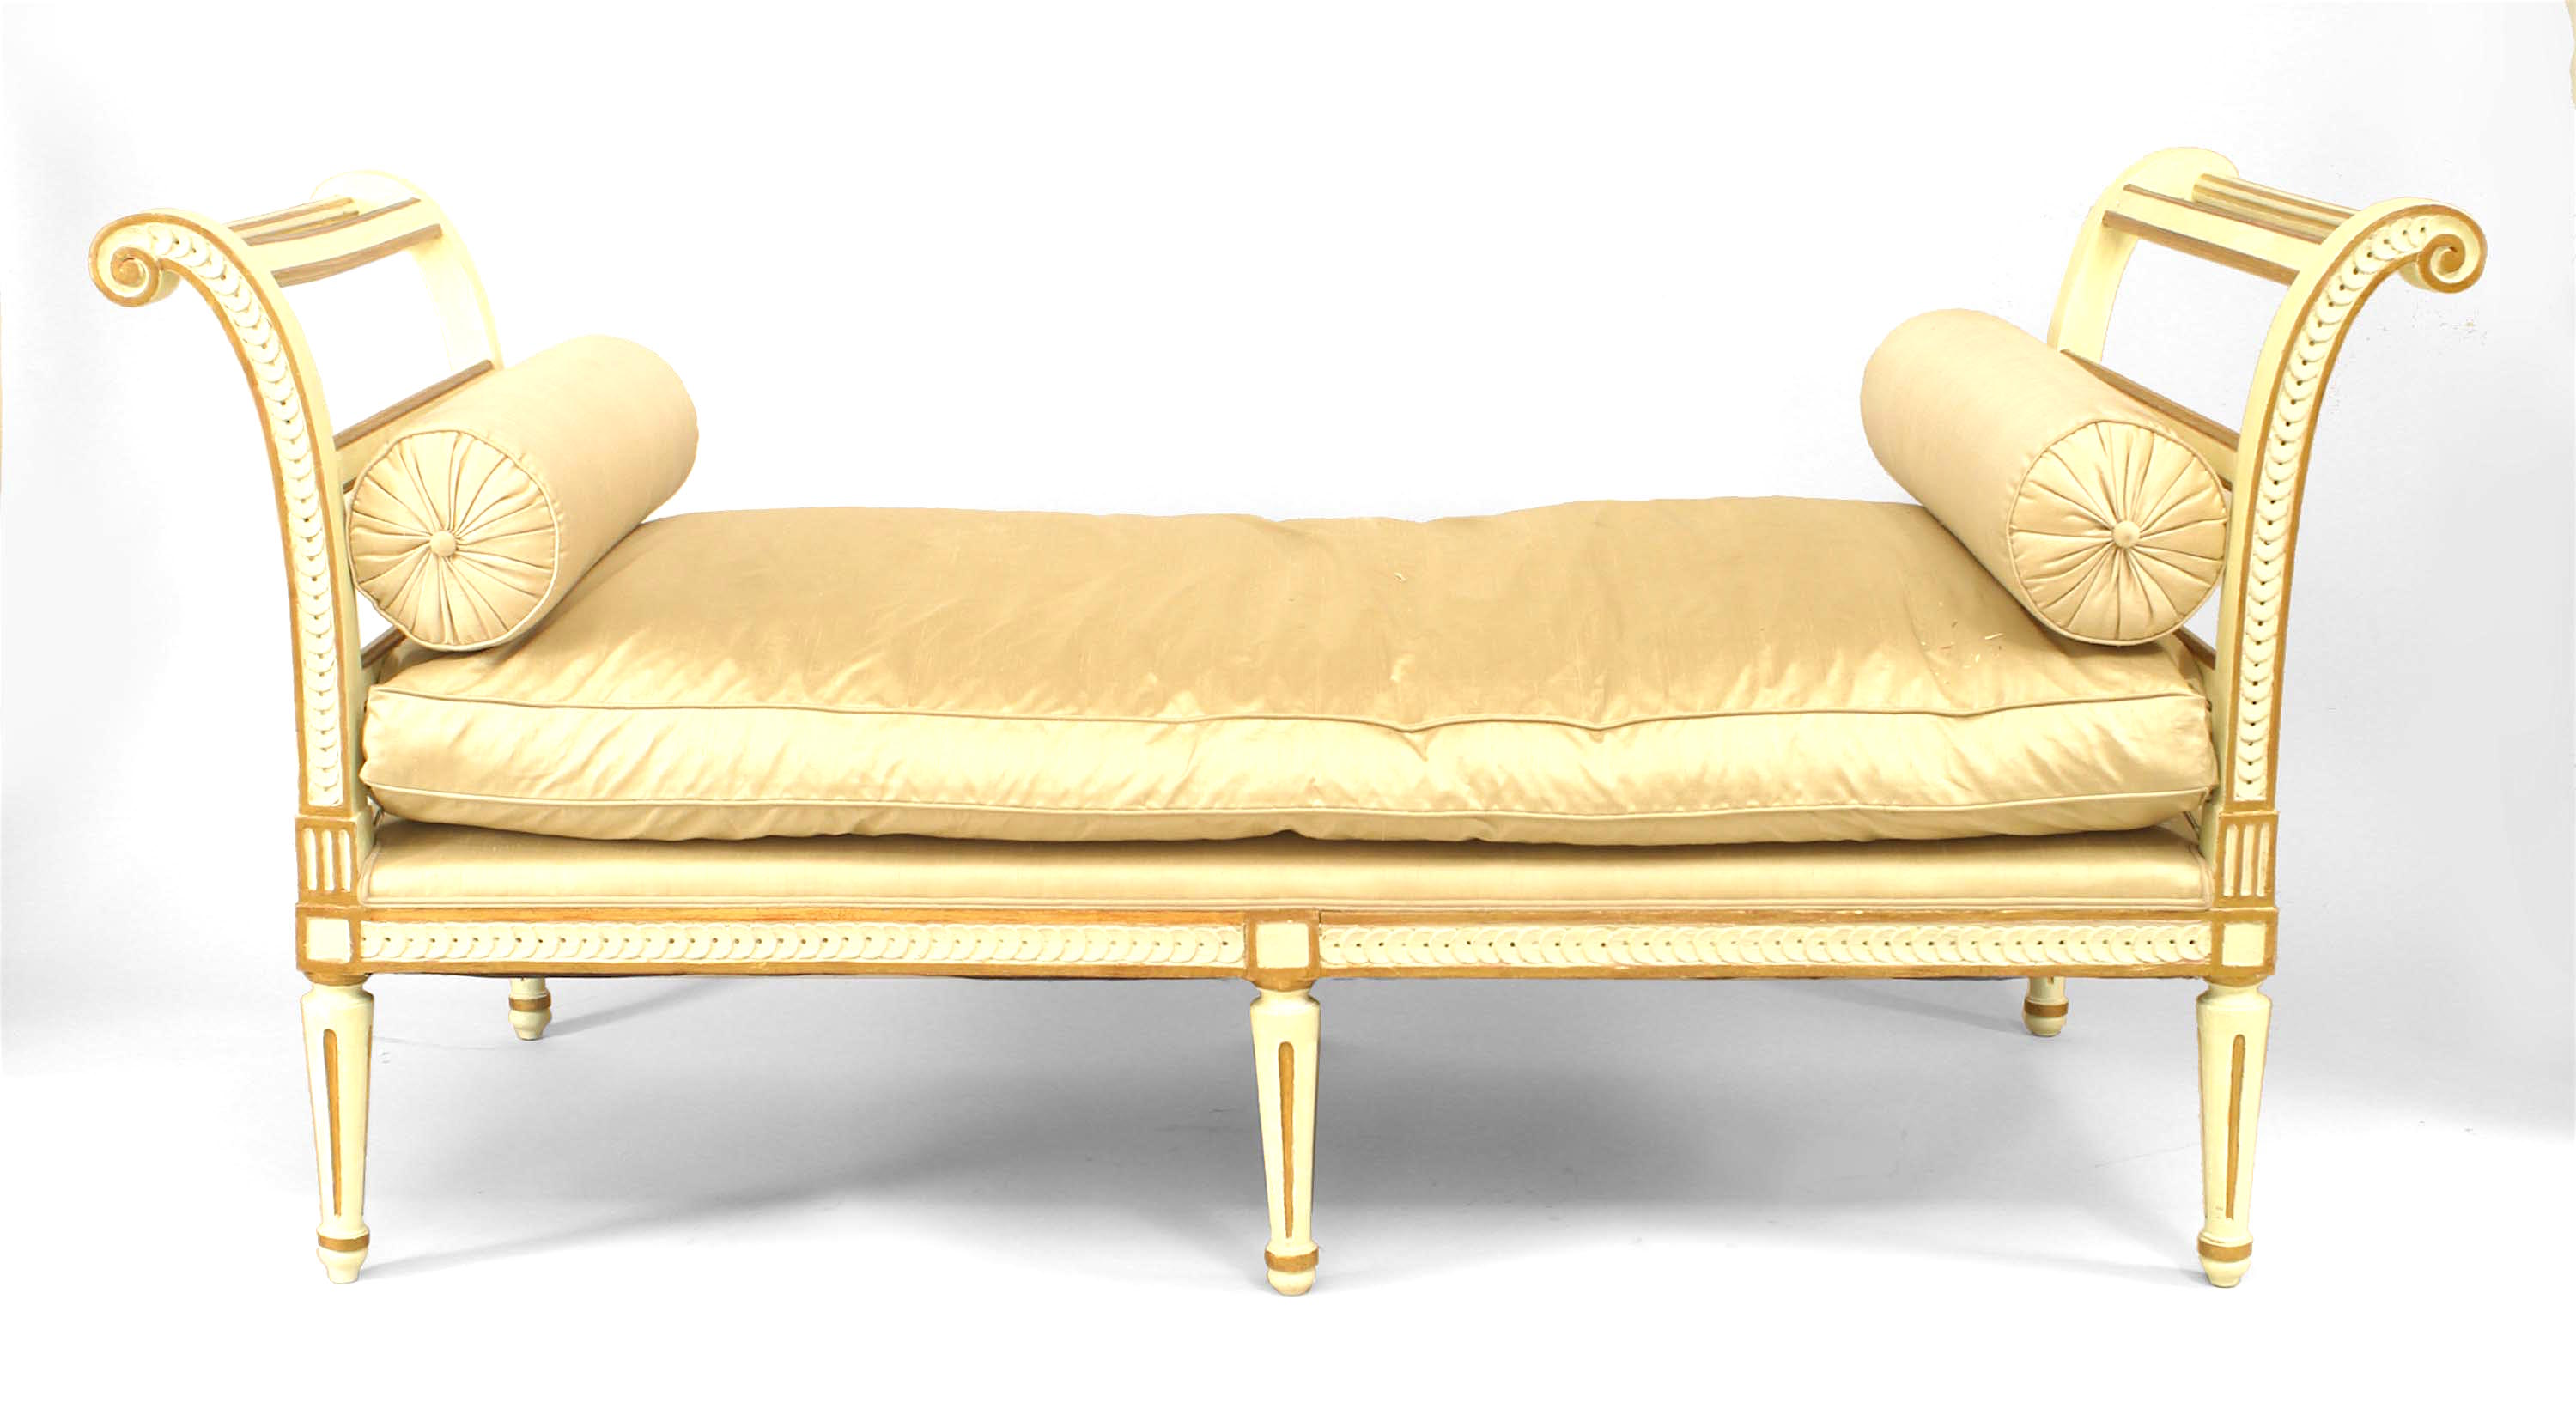 Superb Italian Neo Classic Upholstered Daybed 1 Newel Cjindustries Chair Design For Home Cjindustriesco